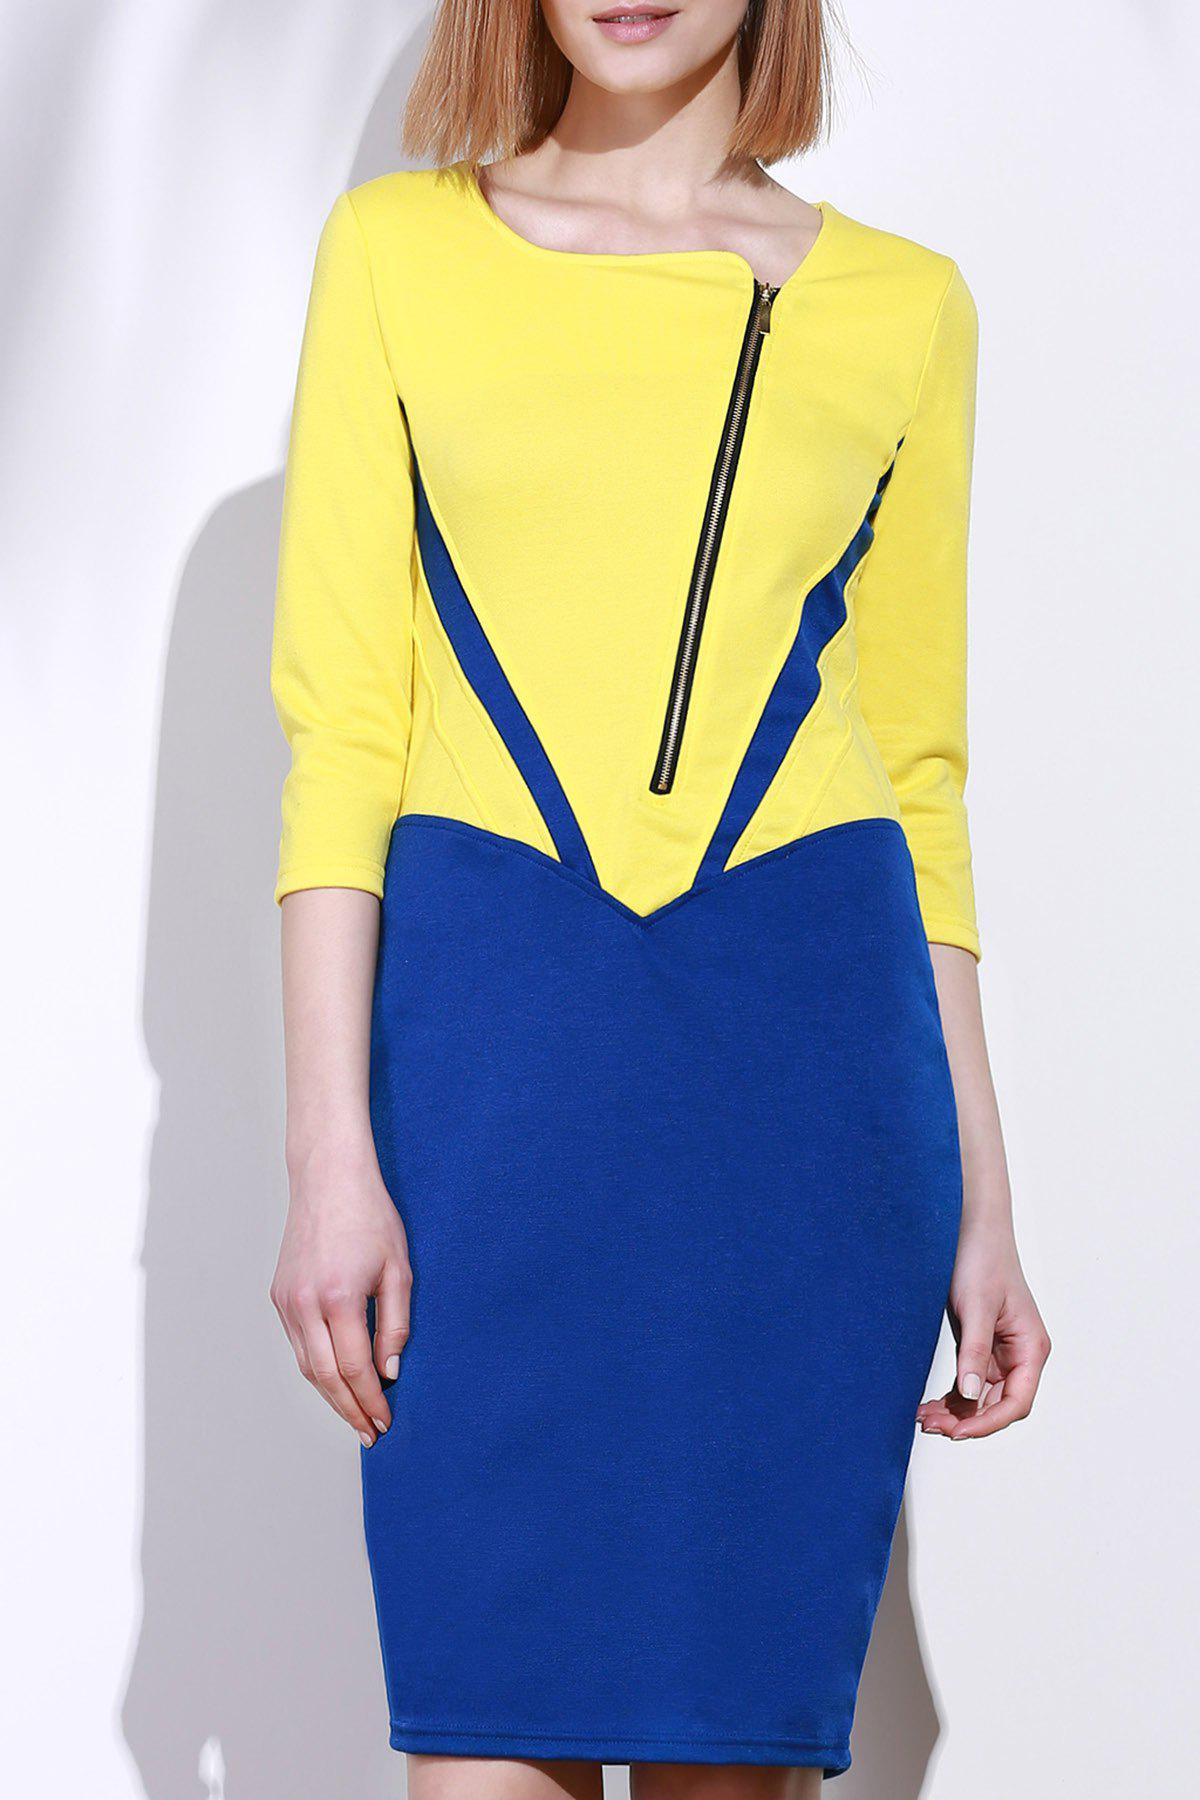 Elegant 3/4 Sleeve Square Neck Zippered Color Block Women's Dress - YELLOW L